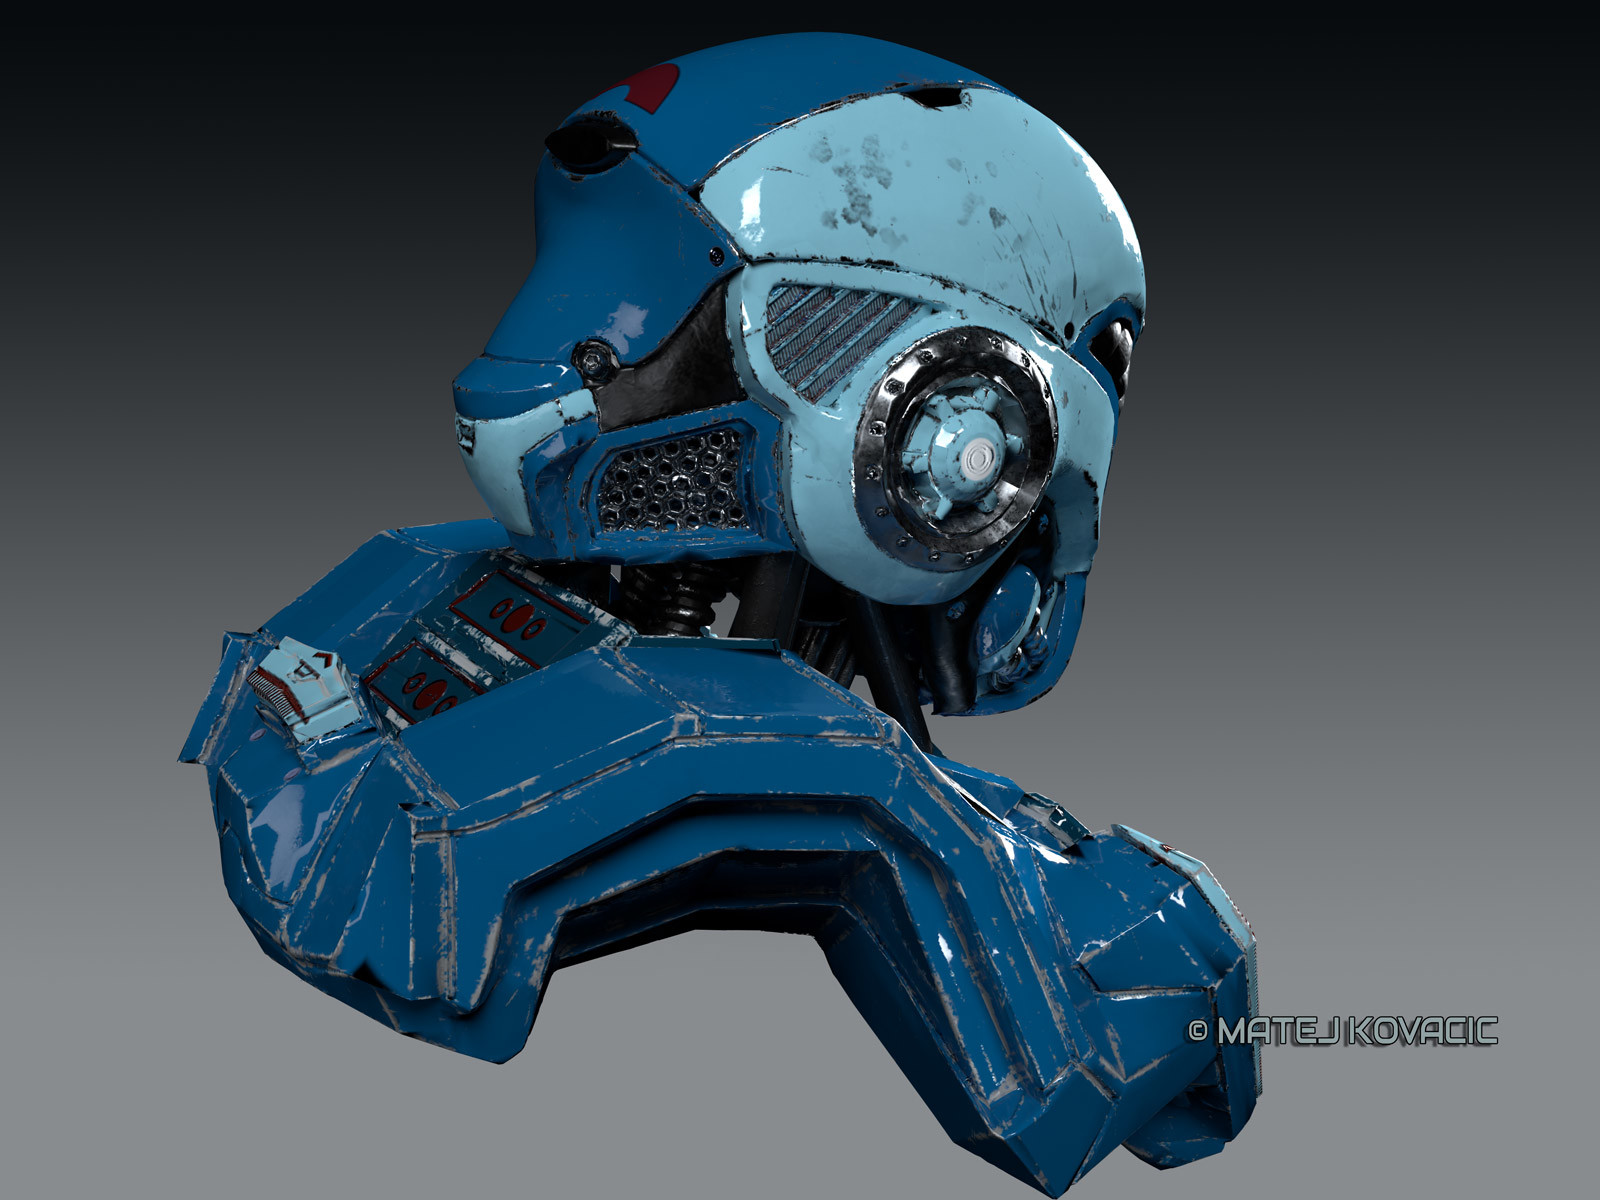 Sci-Fi Helmet RX 51 Cycles Render